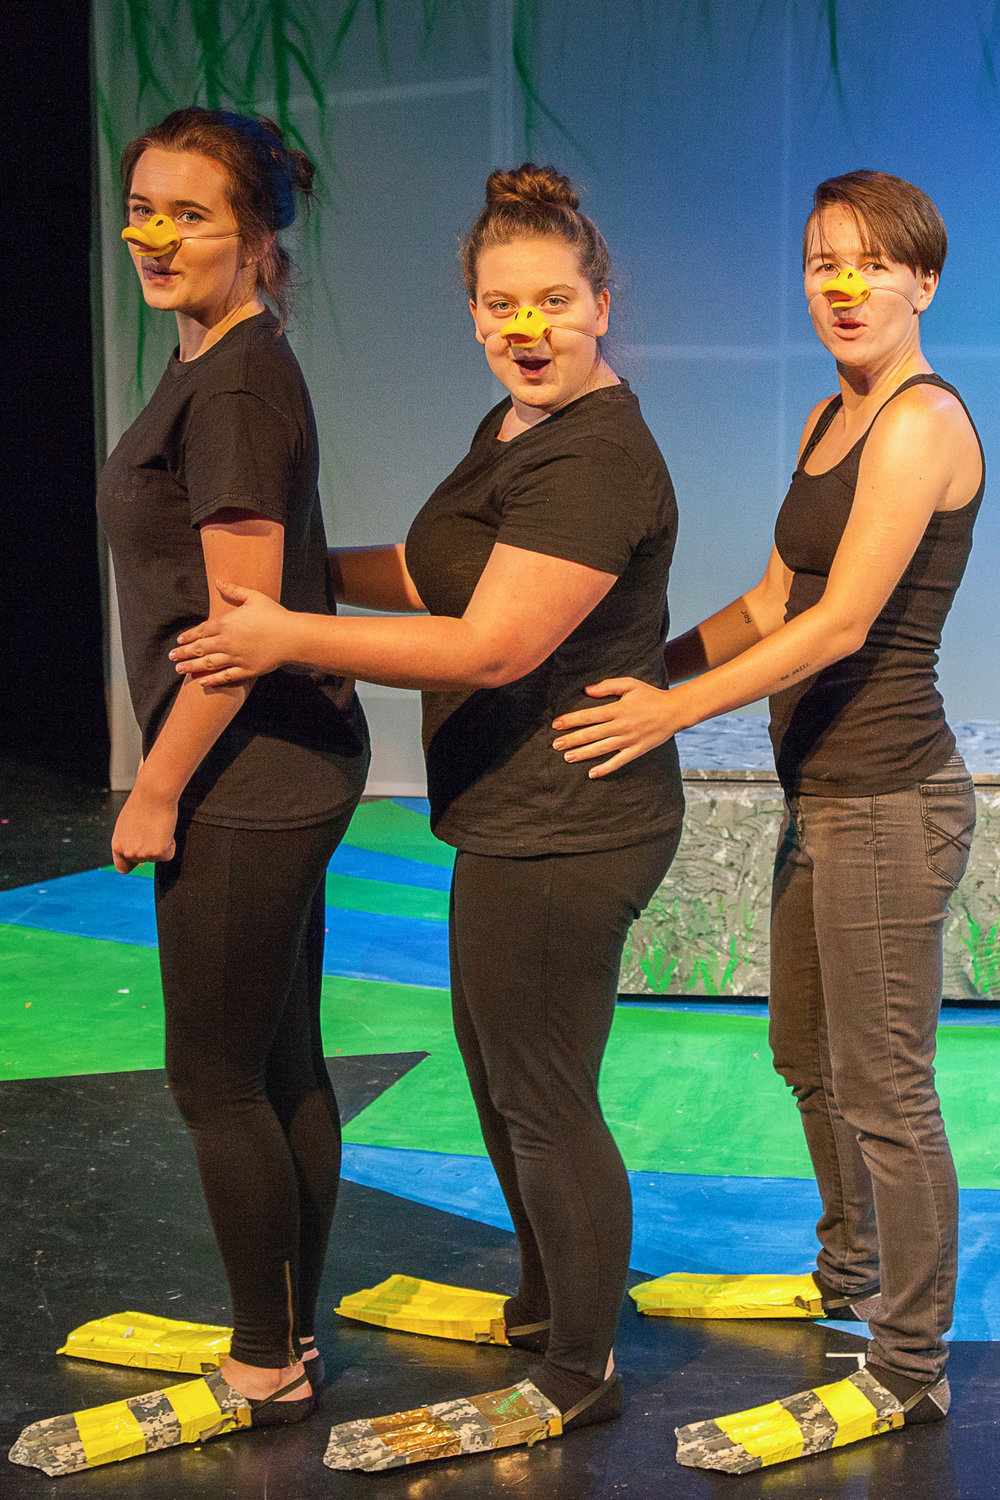 Directed by Janine Albes  Featuring Maddy Walsh, Jillian Schmidt, and Abigail Bliss